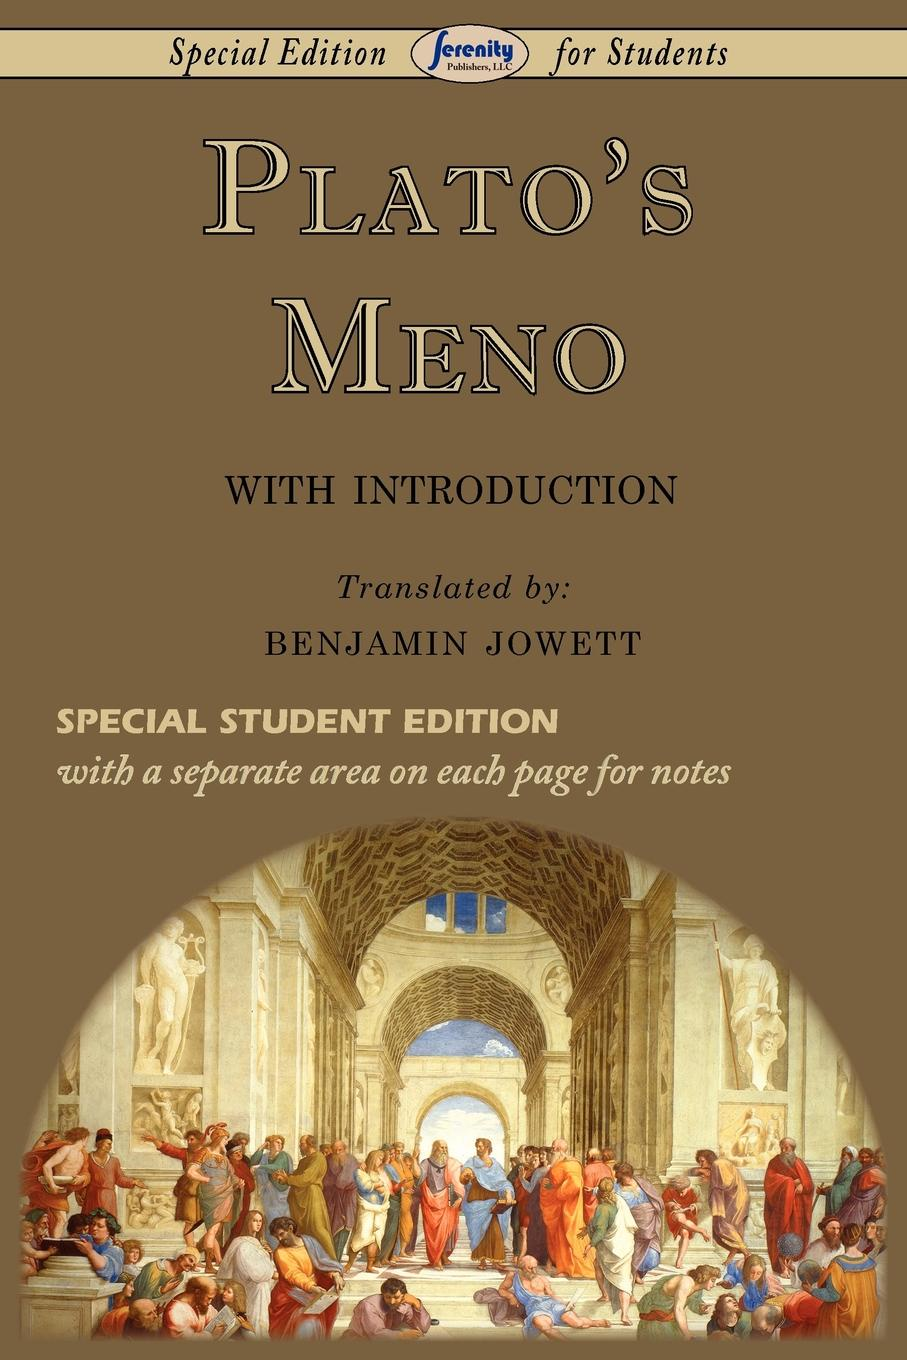 Plato Meno (Special Edition for Students) moritz thomsen my two wars with an introduction by page stegner